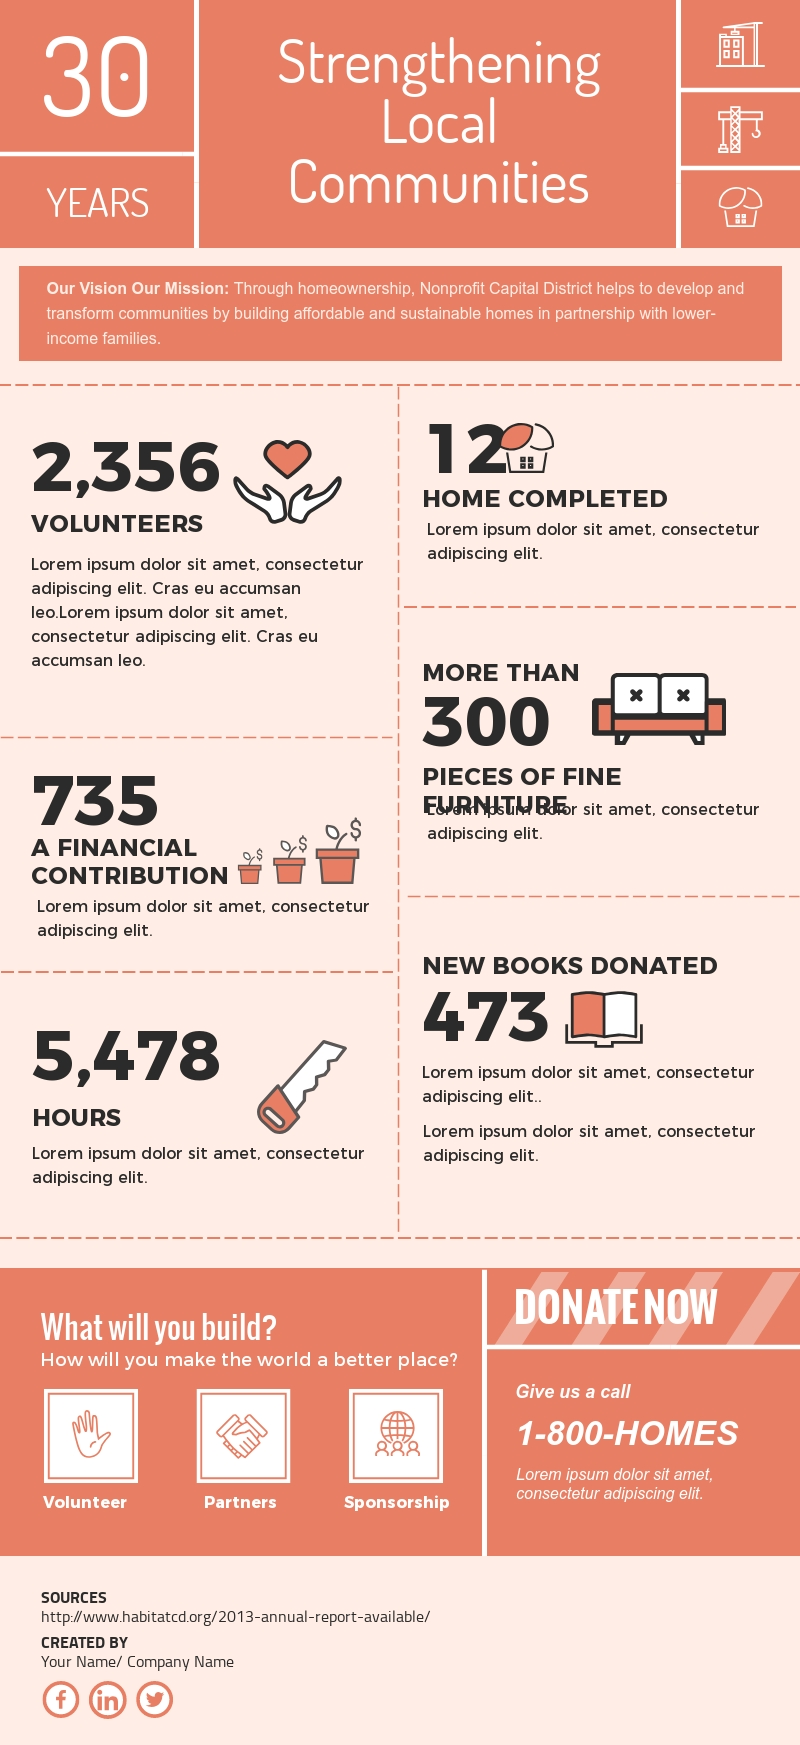 Strengthening Local Communities - Infographic Template